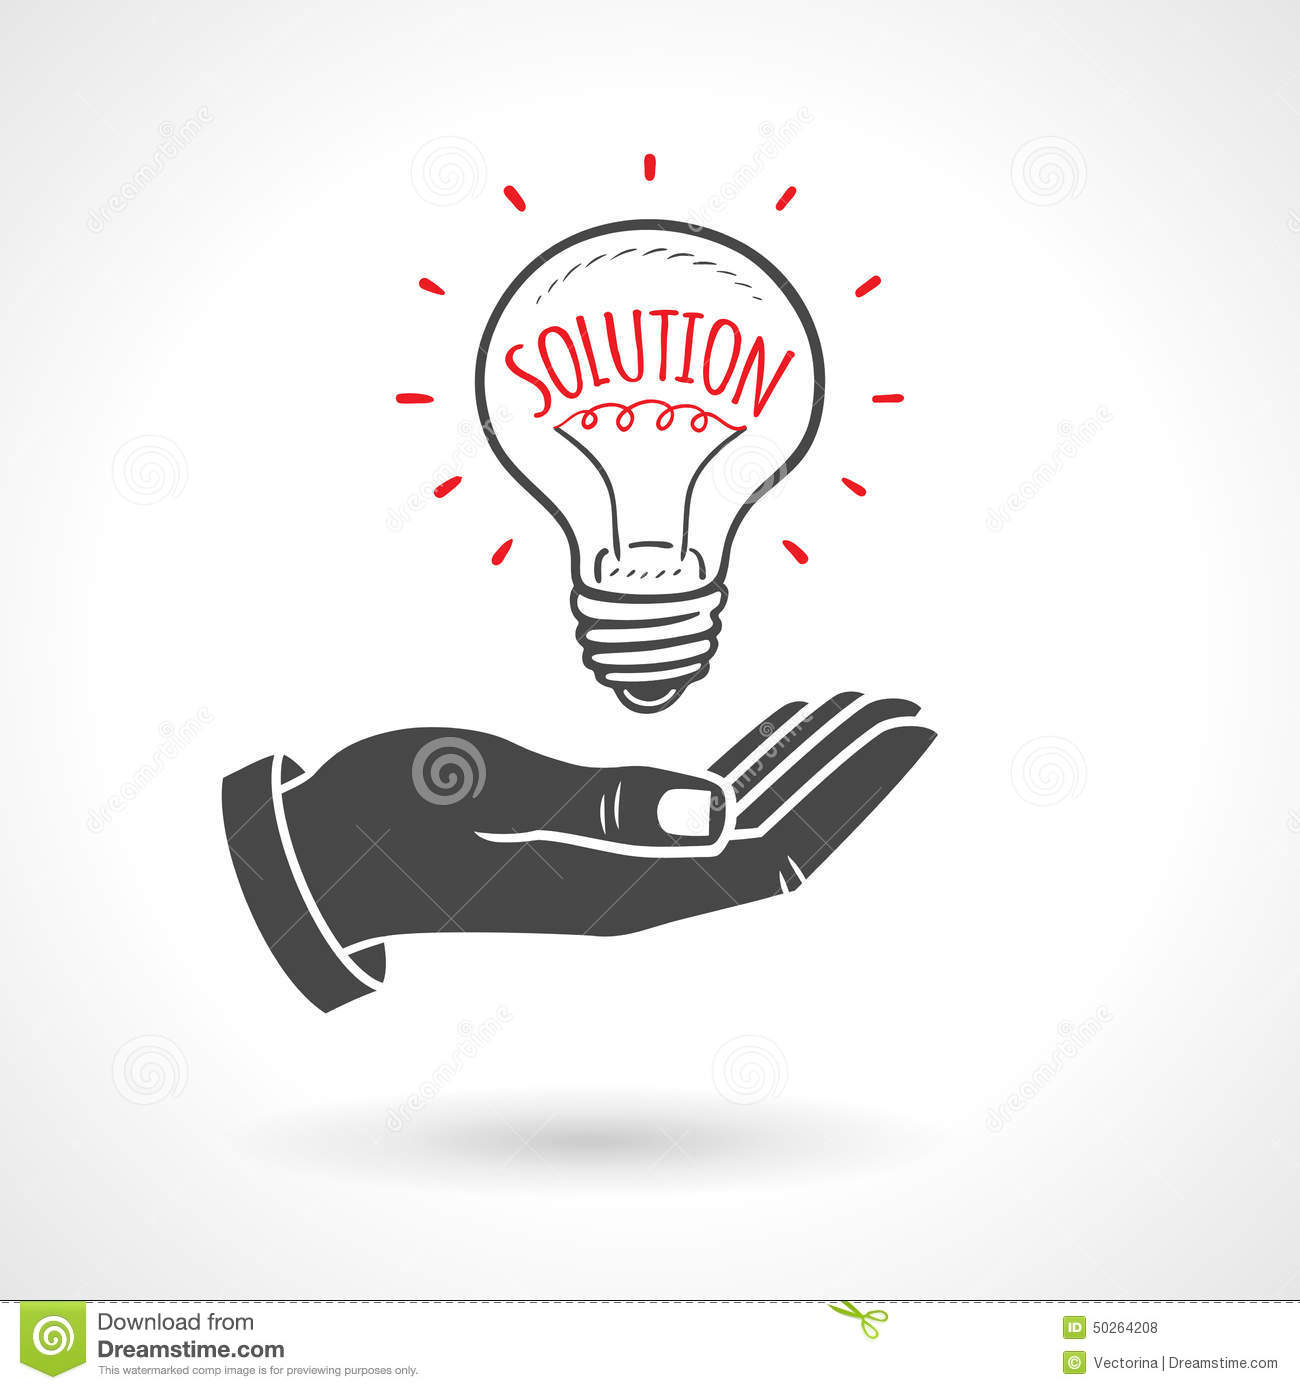 Idees And Solutions: Hand Giving Light Bulb Solution Idea Concept Stock Vector